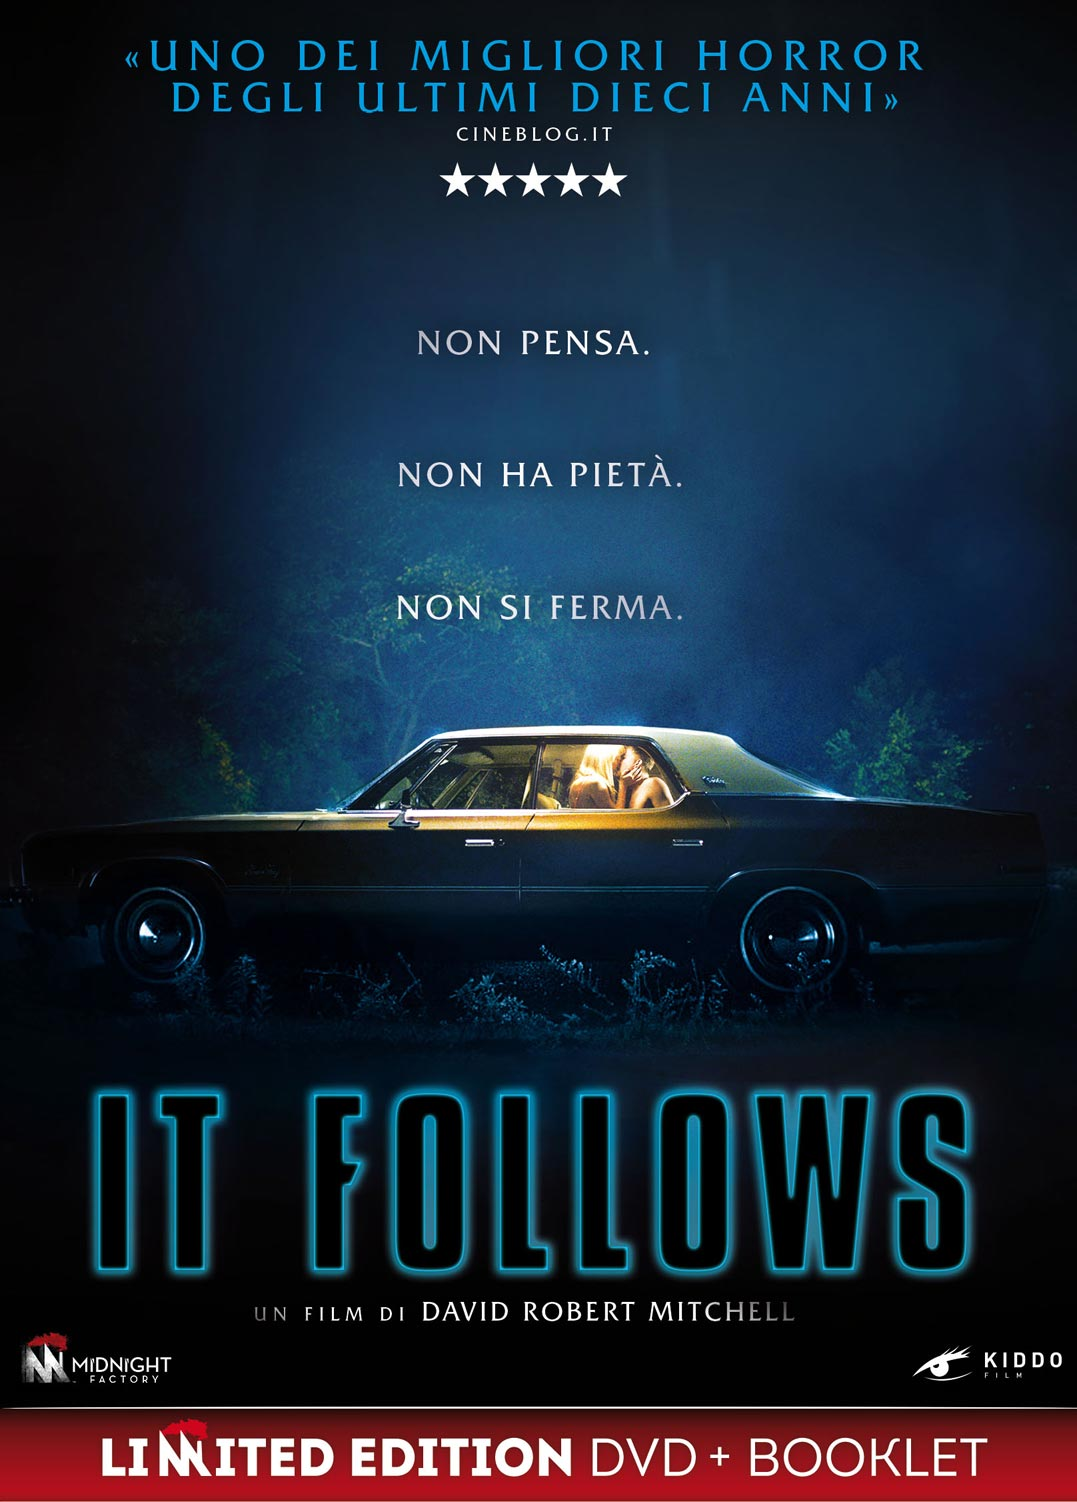 IT FOLLOWS (LTD) (DVD+BOOKLET) (DVD)